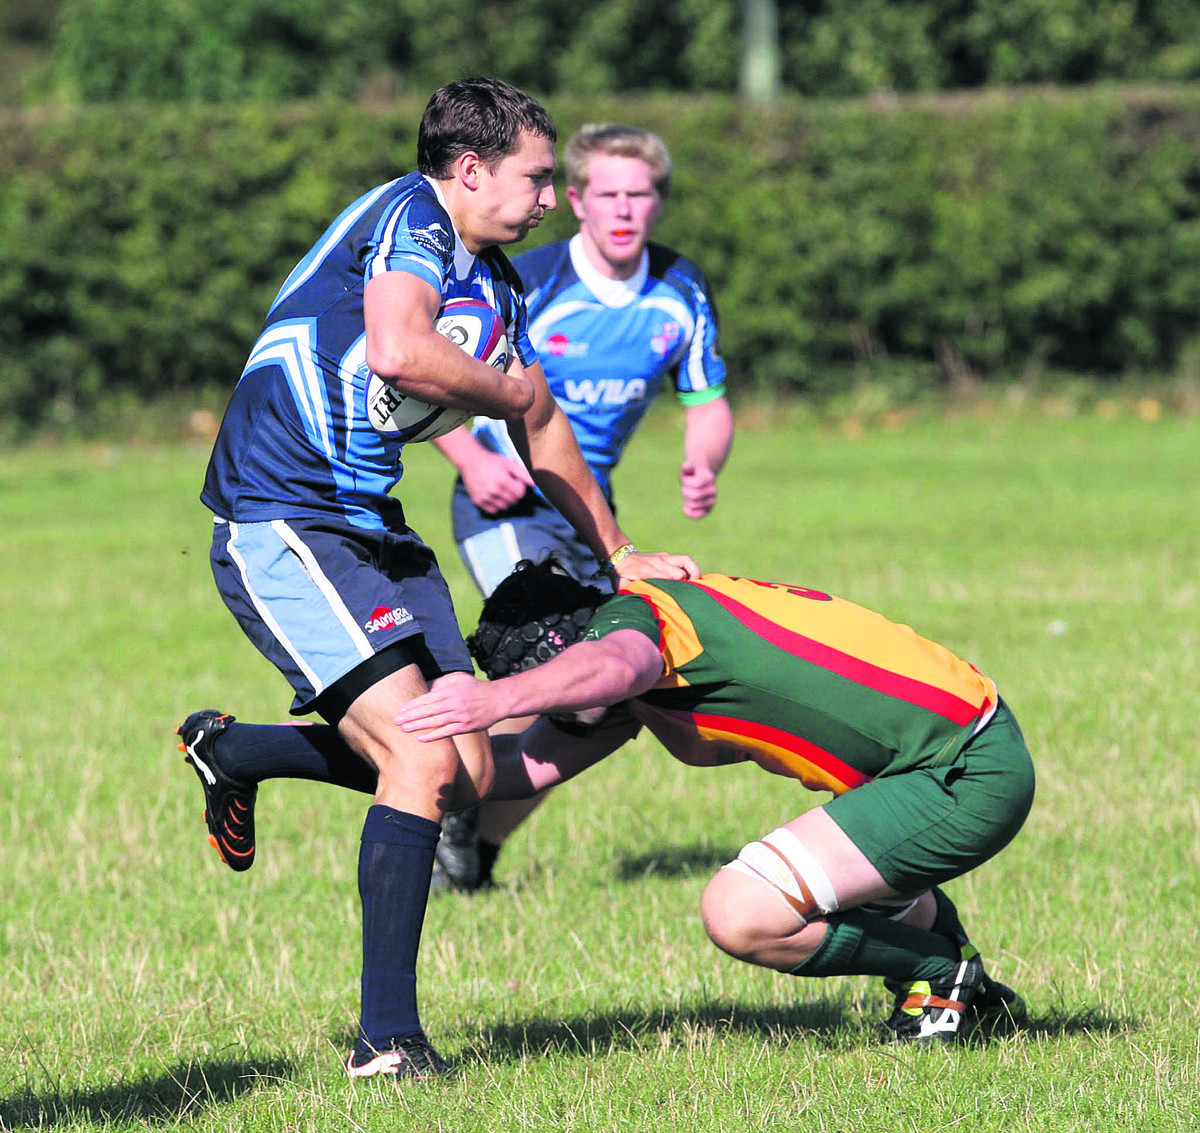 Robin Tyreman scored one of Alchester's tries in their 22-20 defeat at Drifters in Southern Counties North on Saturday